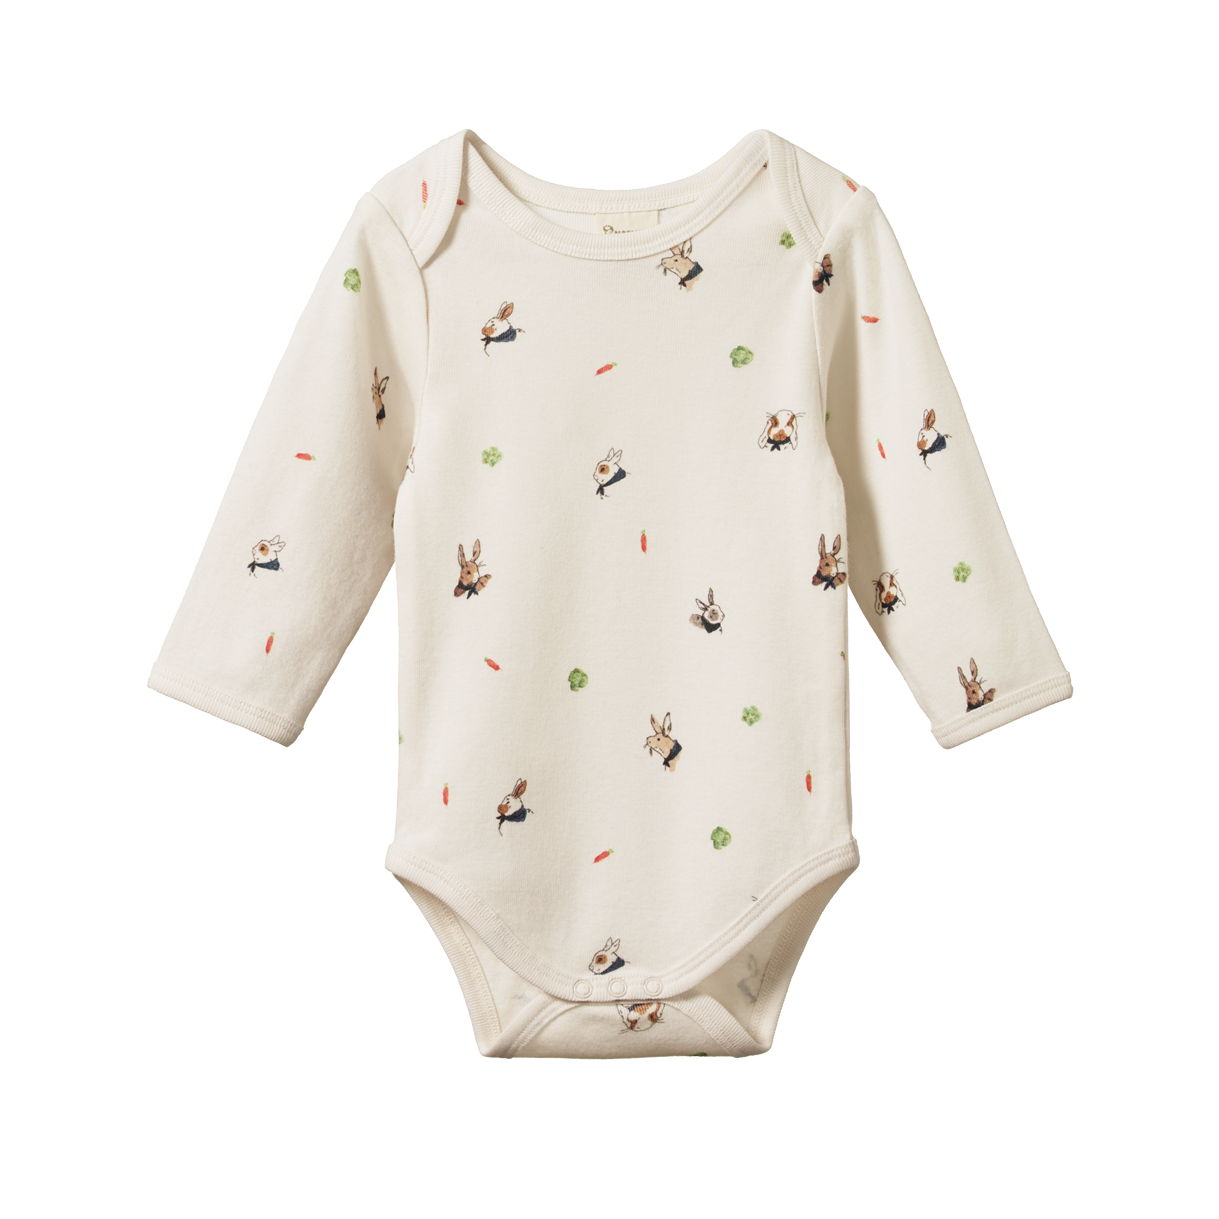 Nature Baby Long Sleeved Bodysuit - Bunny Garden Print